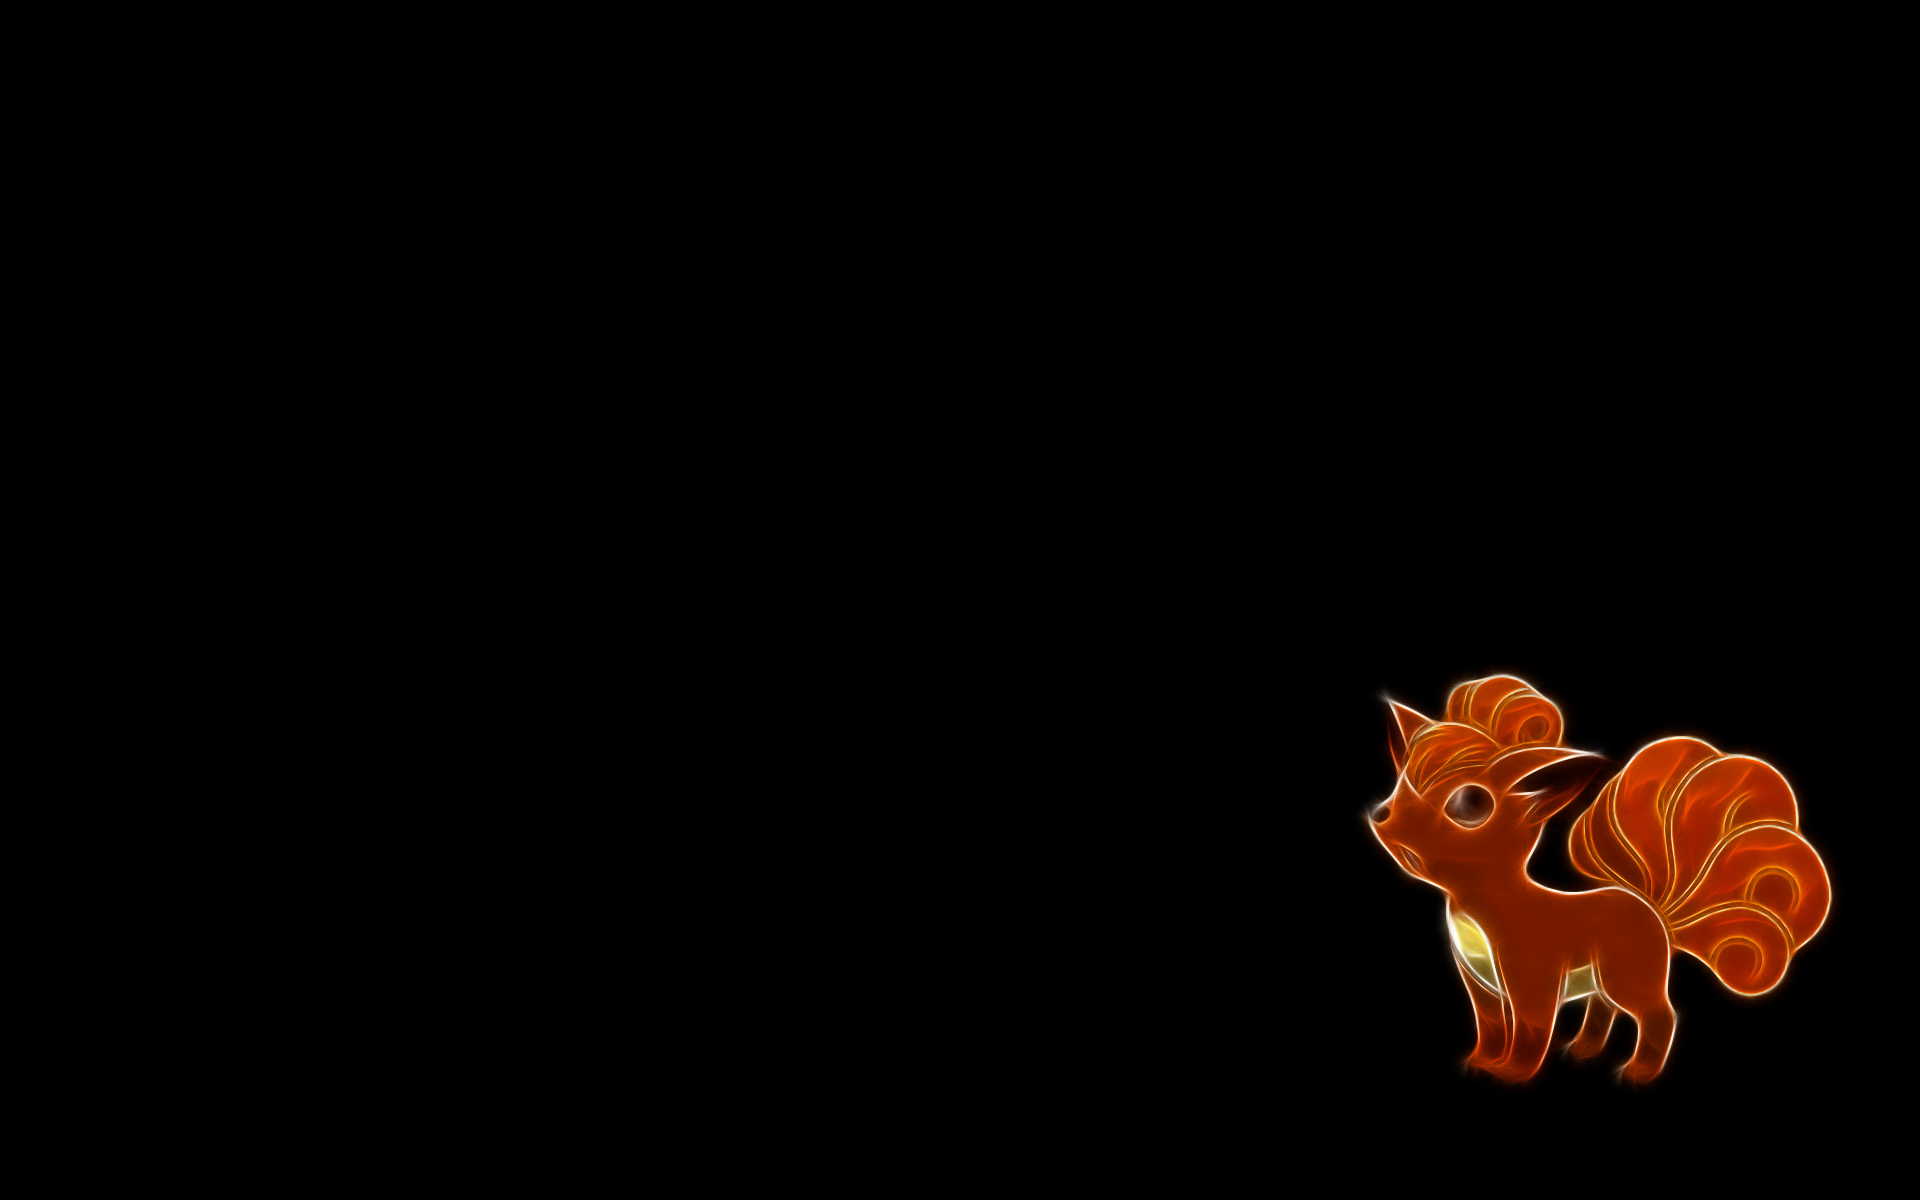 Vulpix Wallpapers Vulpix Myspace Backgrounds Vulpix Backgrounds For 1920x1200